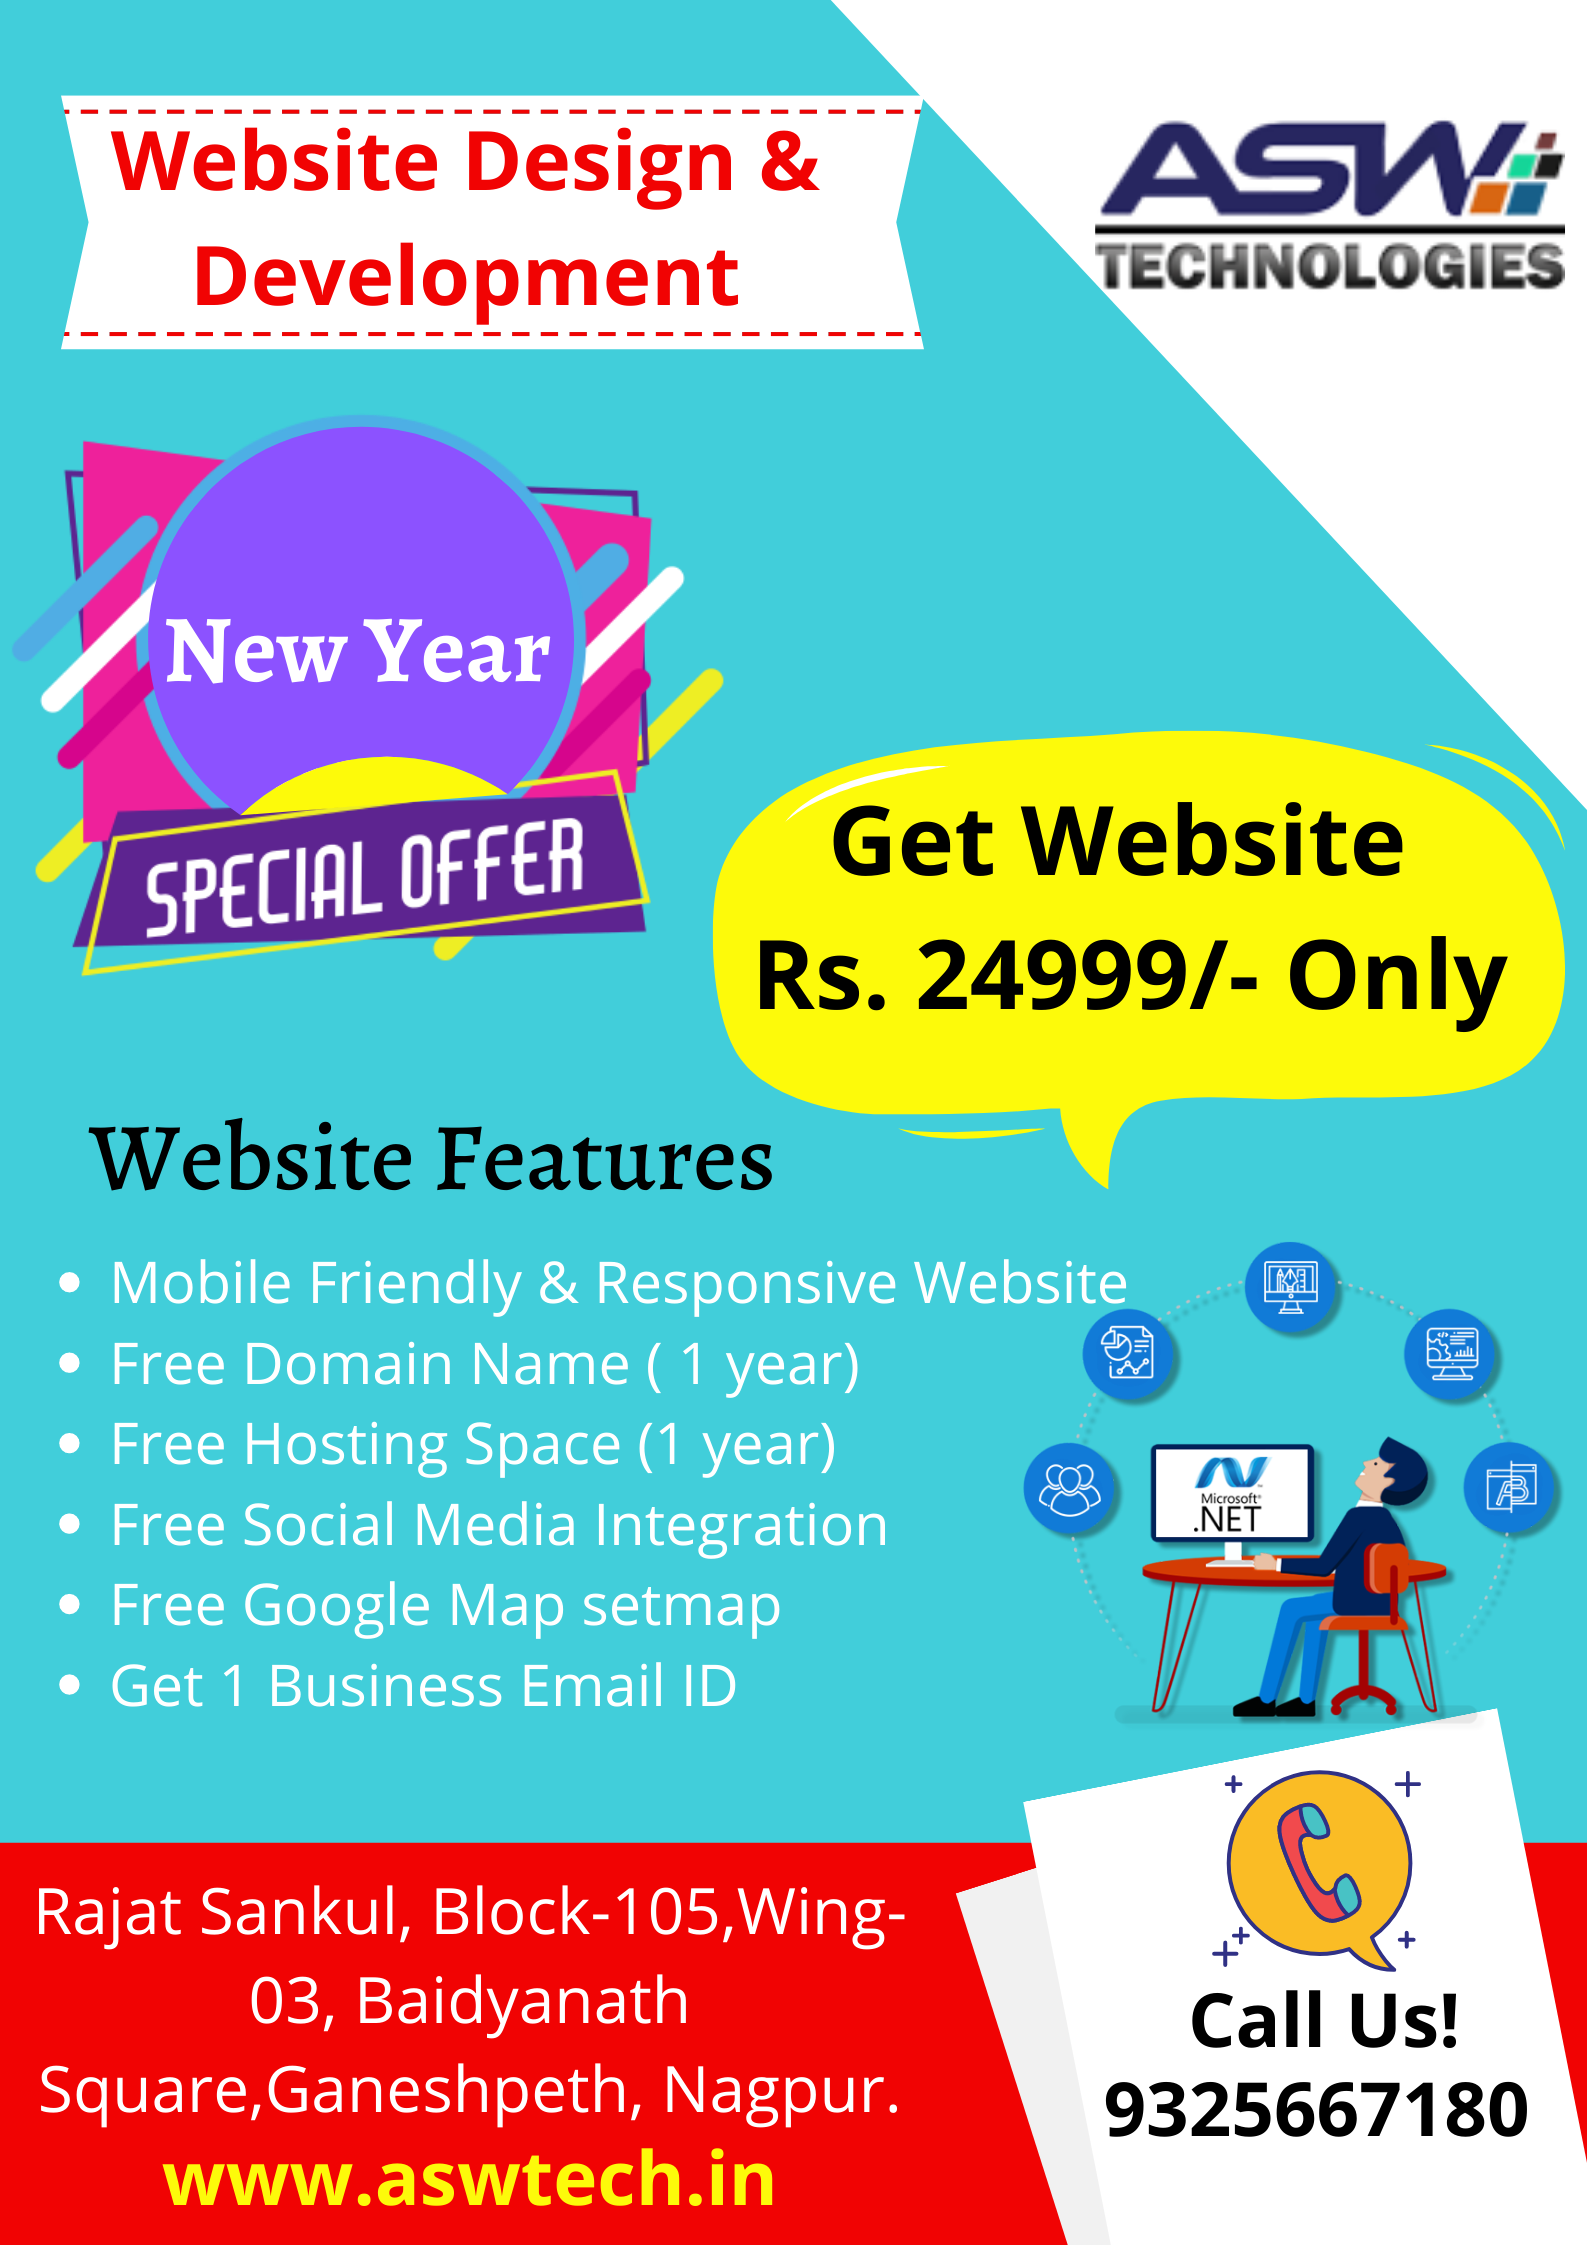 New Year Offer For Website Design And Development... The